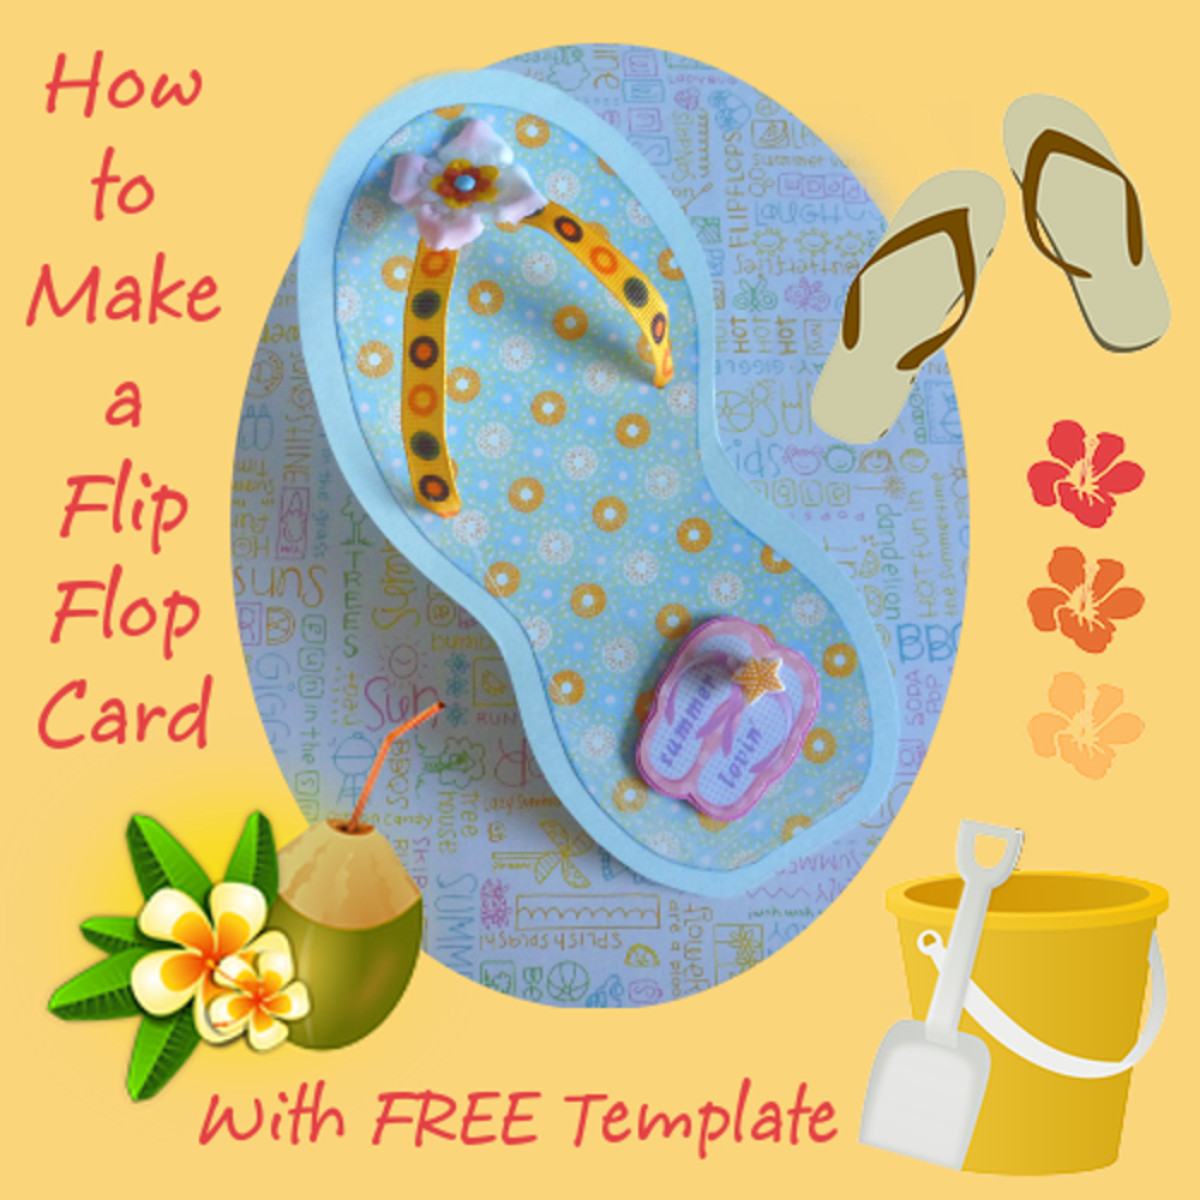 How to make a flip flop card with a free printable template to use. Summer crafts crafting tutorial.